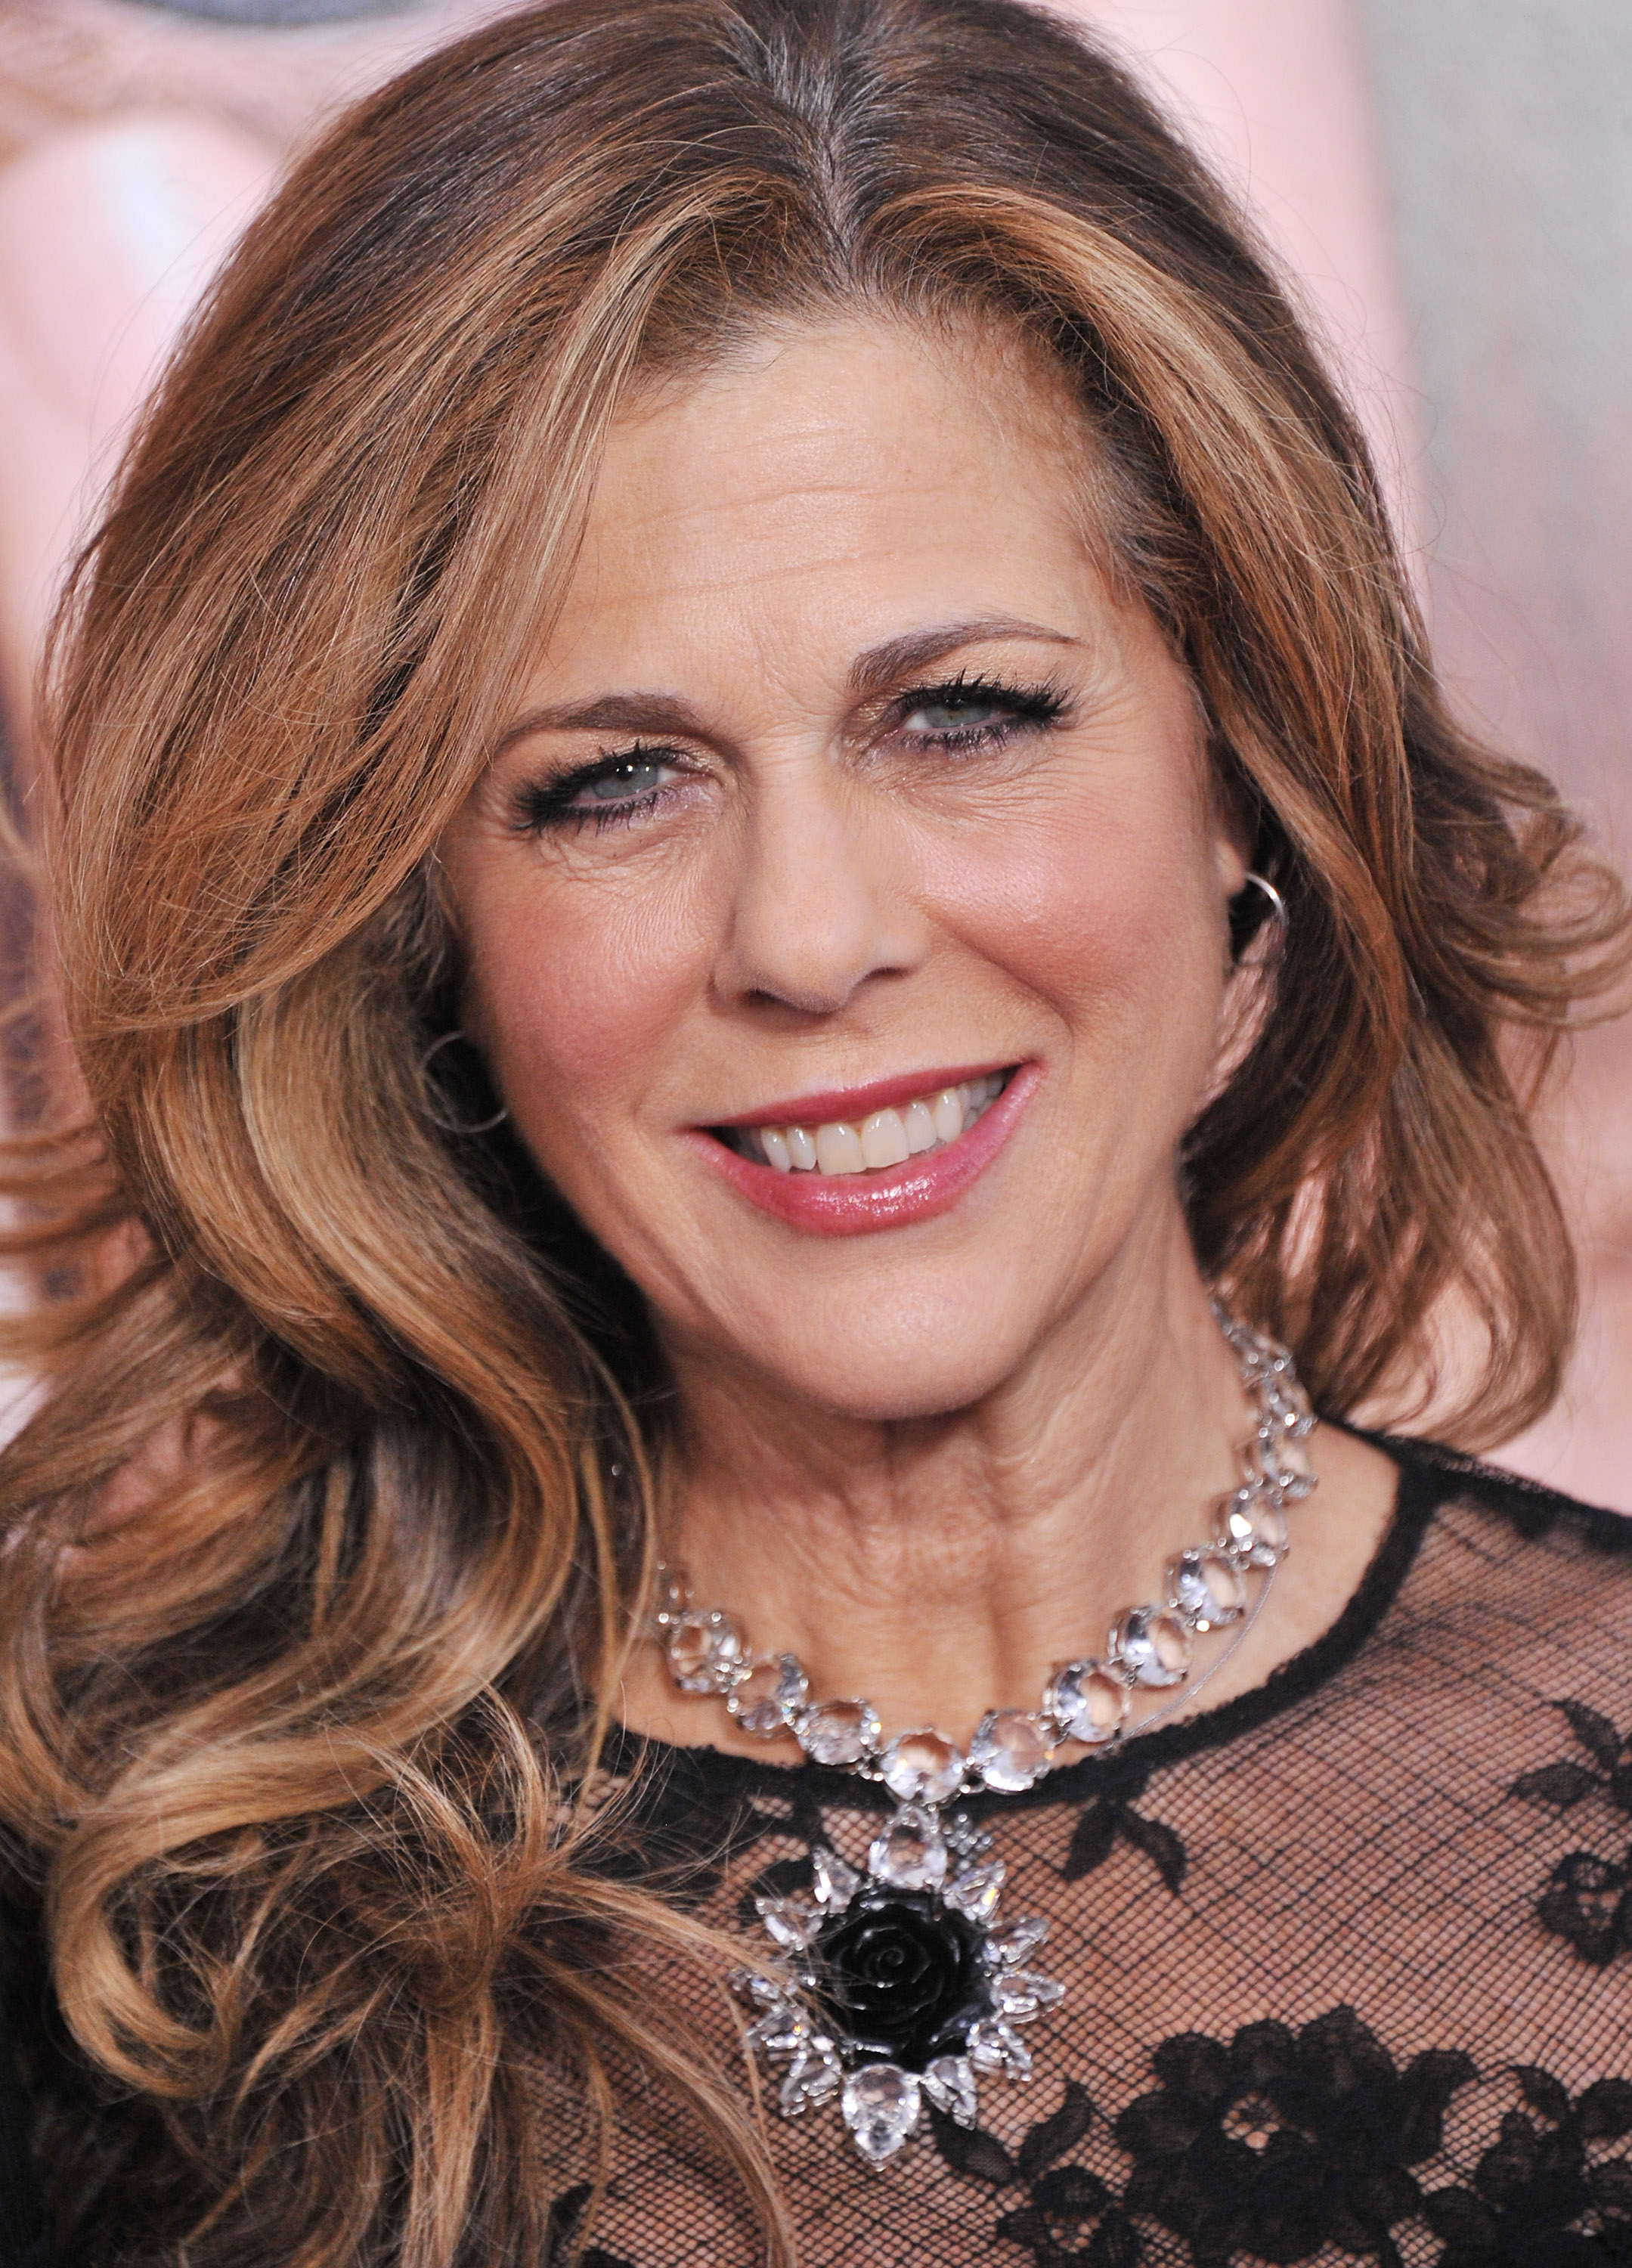 rita wilson blind itemrita wilson instagram, rita wilson cancer, rita wilson wiki, rita wilson astrotheme, rita wilson turkish, rita wilson blind item, rita wilson even more mine, rita wilson parents, rita wilson greek, rita wilson young, rita wilson tom hanks wife, rita wilson sam heughan, rita wilson youtube, rita wilson films, rita wilson biography